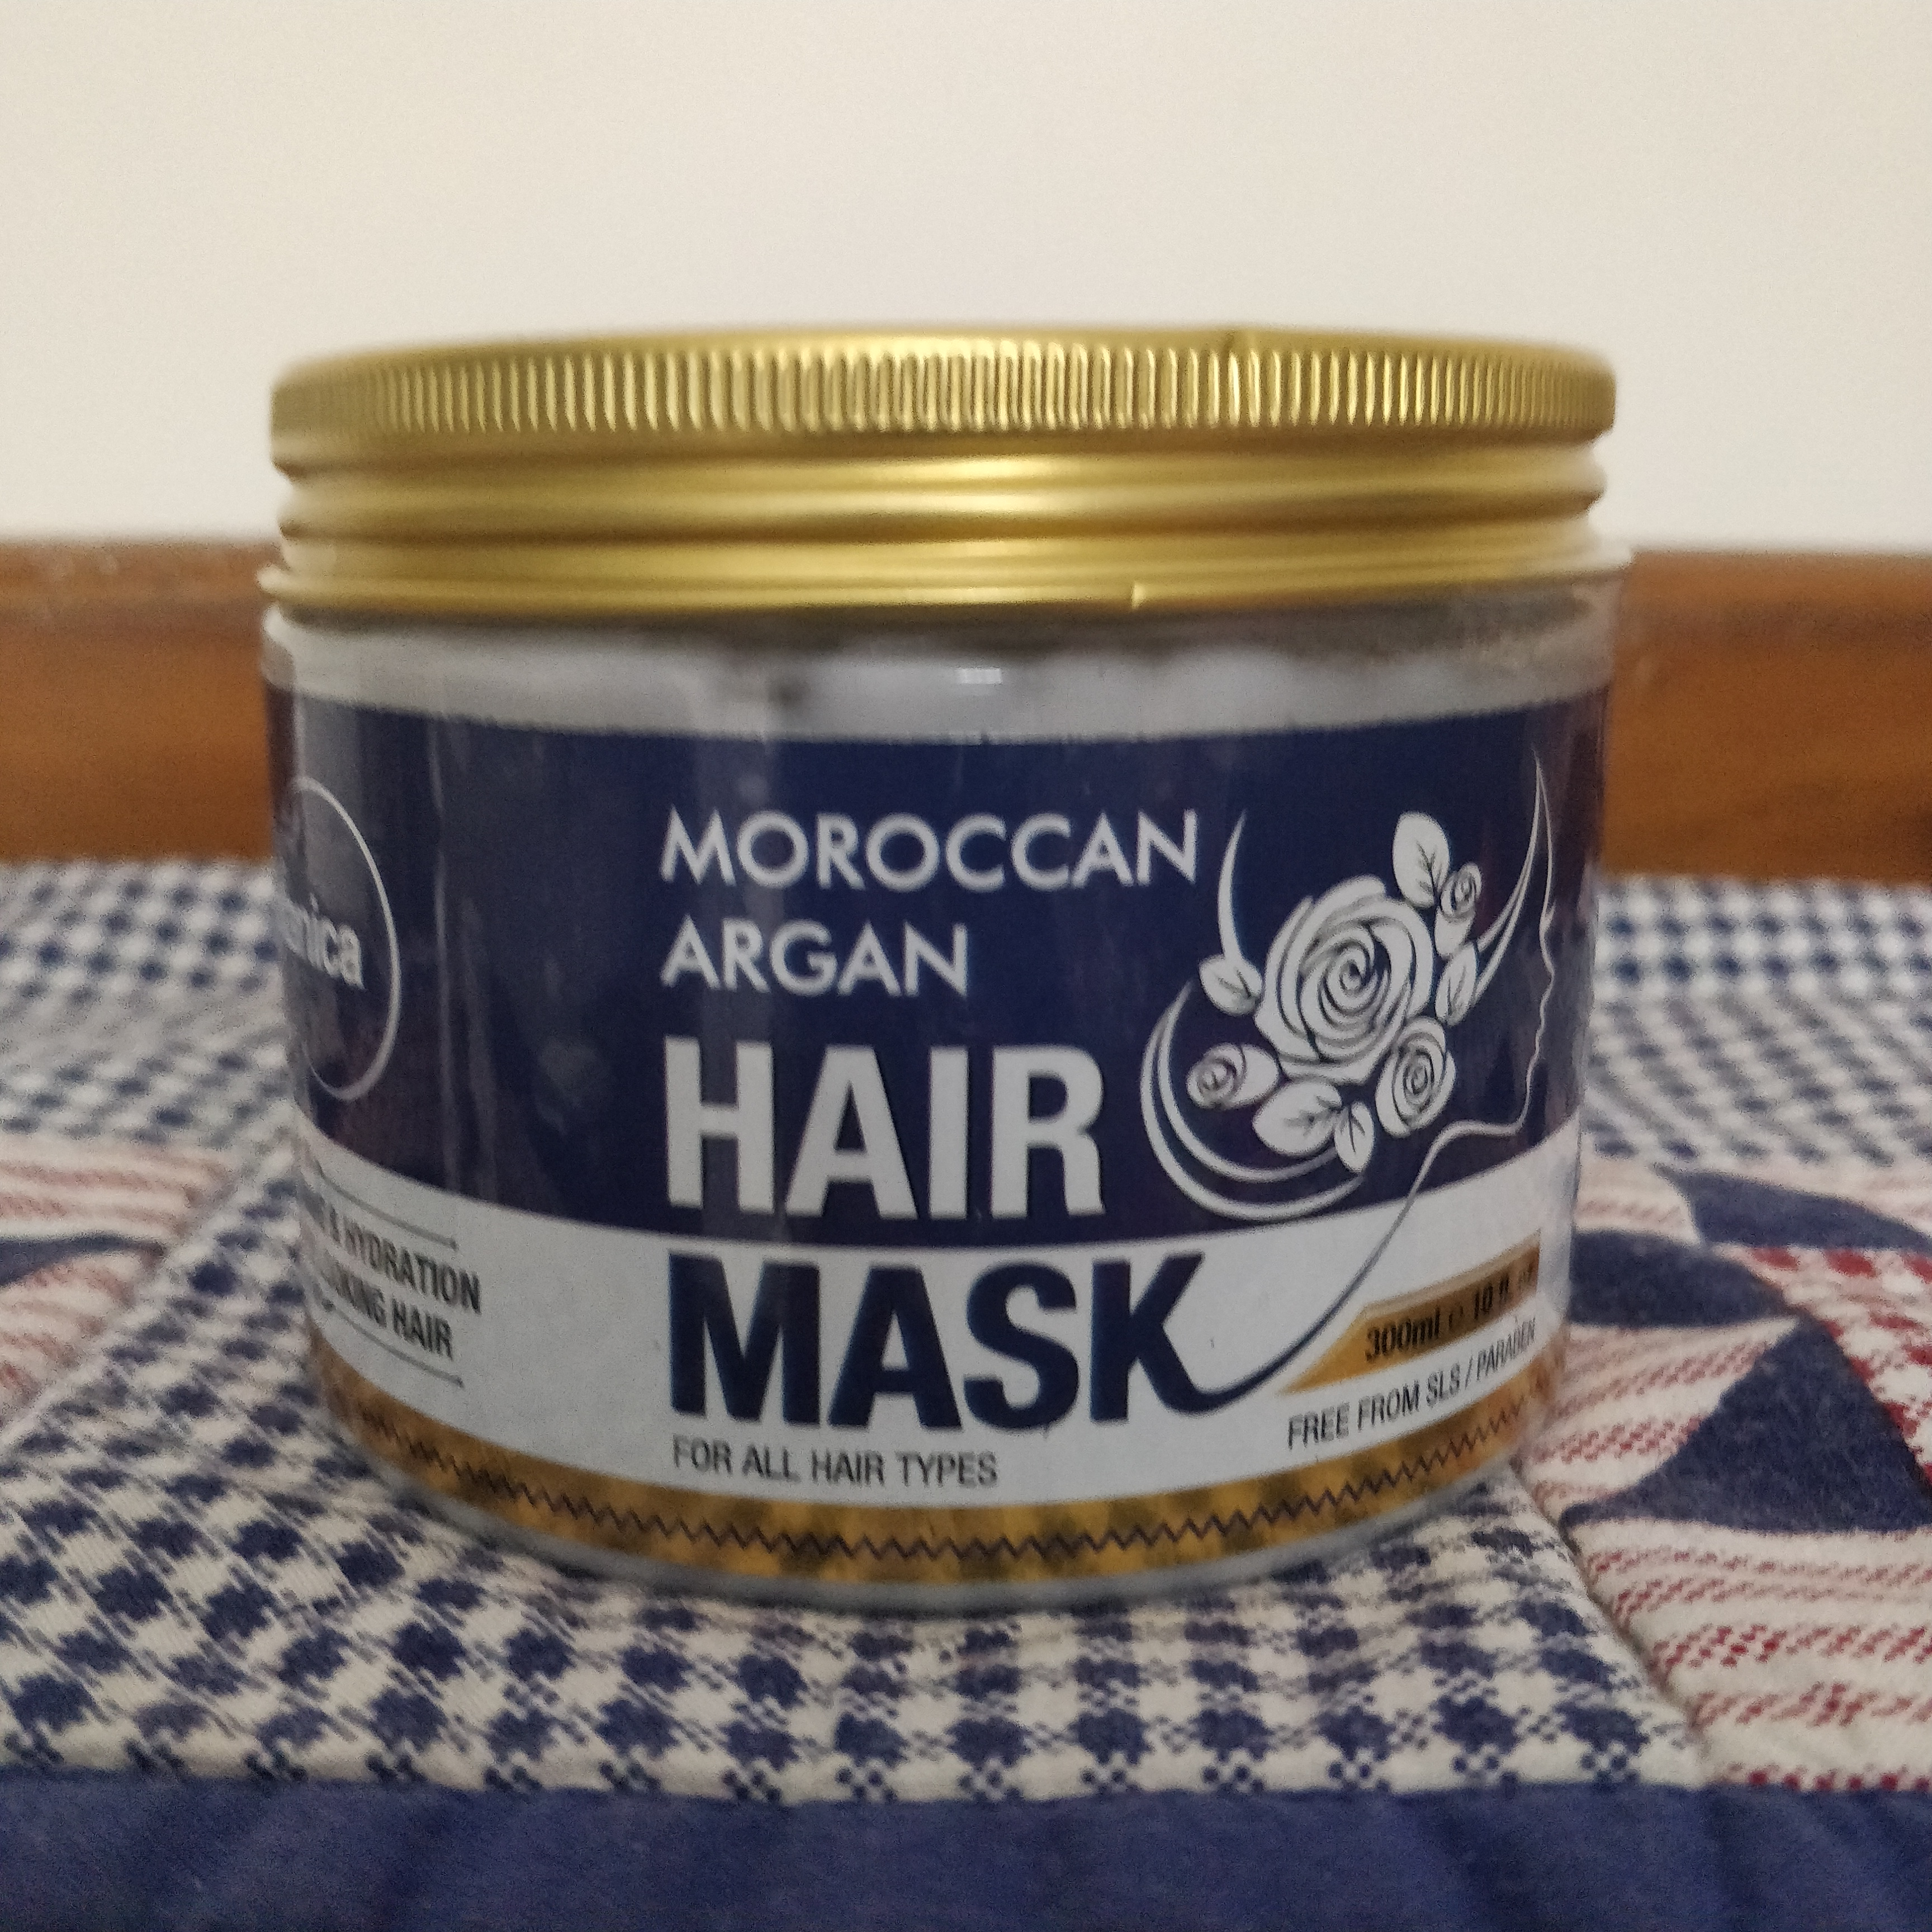 St.Botanica Moroccan Argan Hair Mask -Great for chemical treated hair-By mjolly